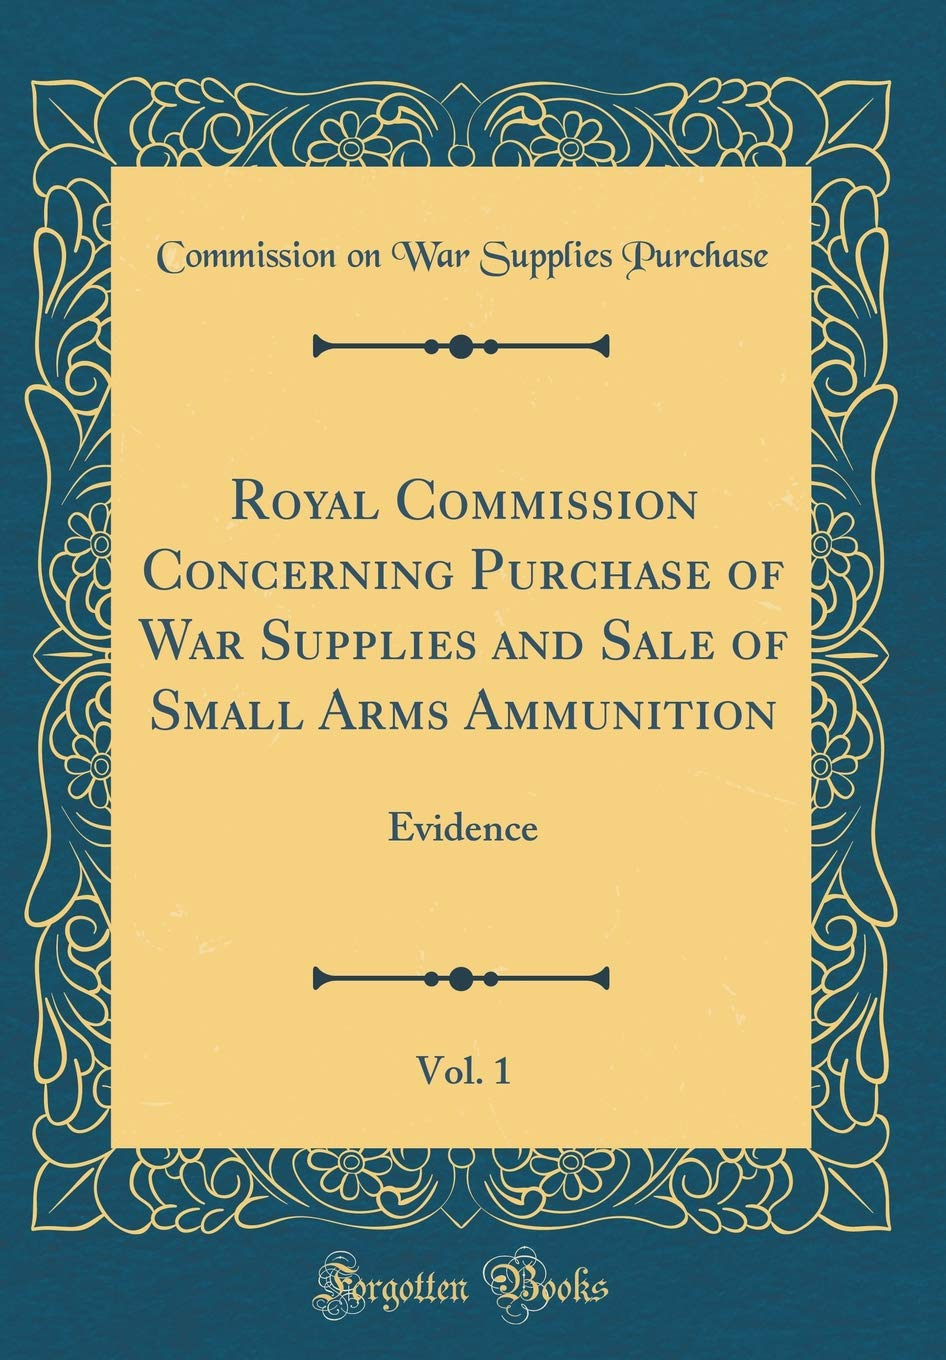 Royal Commission Concerning Purchase of War Supplies and Sale of Small Arms Ammunition, Vol. 1: Evidence (Classic Reprint) pdf epub